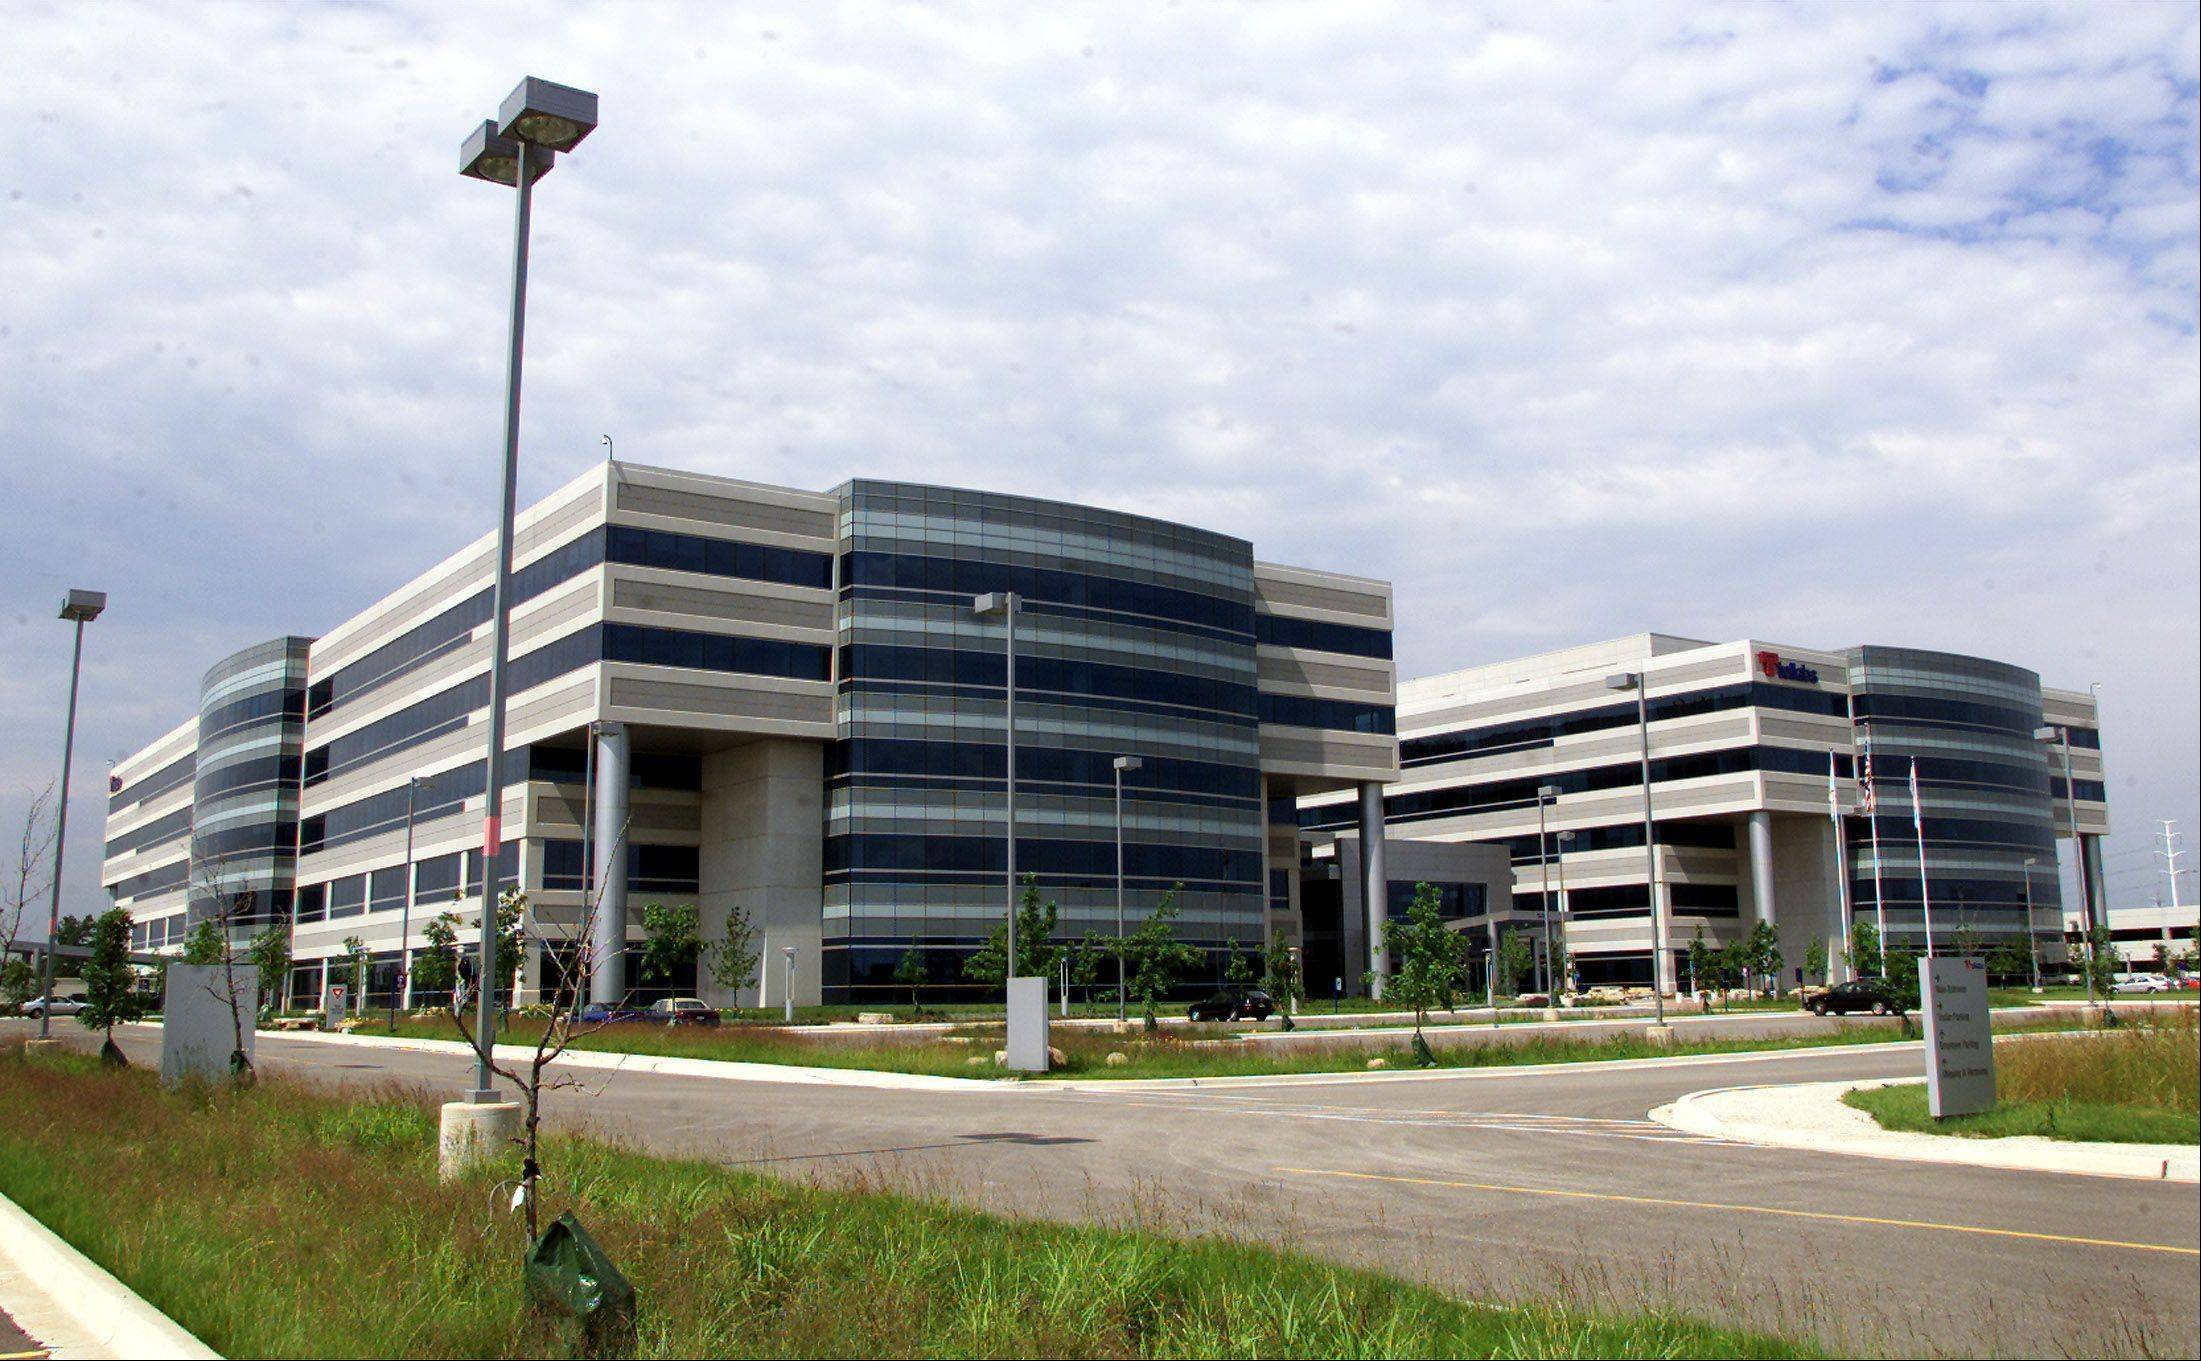 Naperville-based Tellabs Inc. will cut about 300 jobs after it posted a $23 million loss in the fourth quarter.